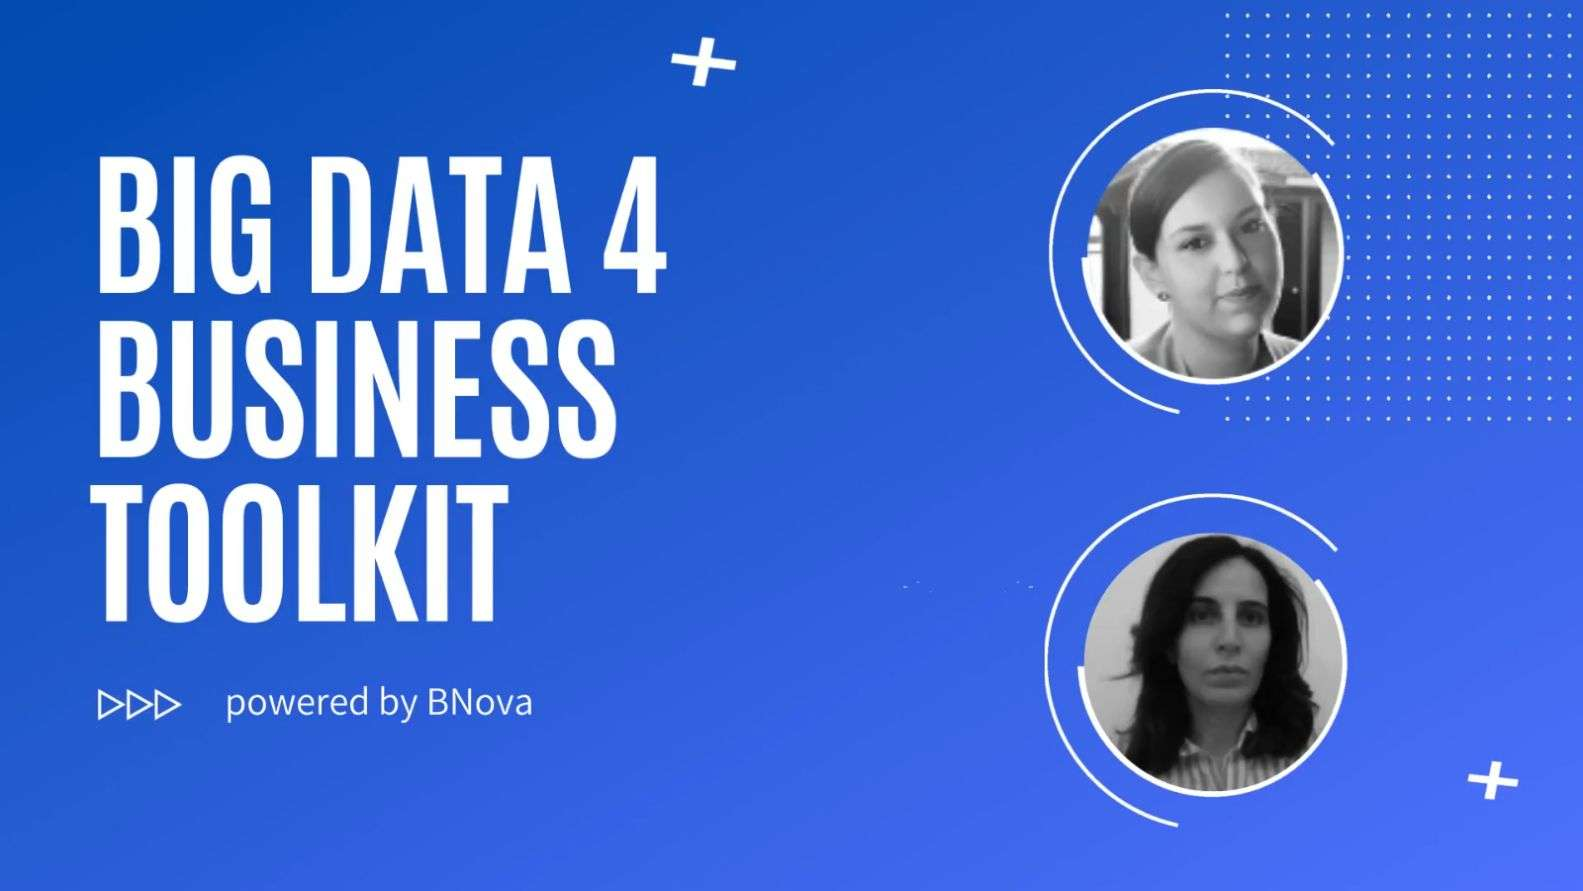 bnova big data 4 business toolkit webinar